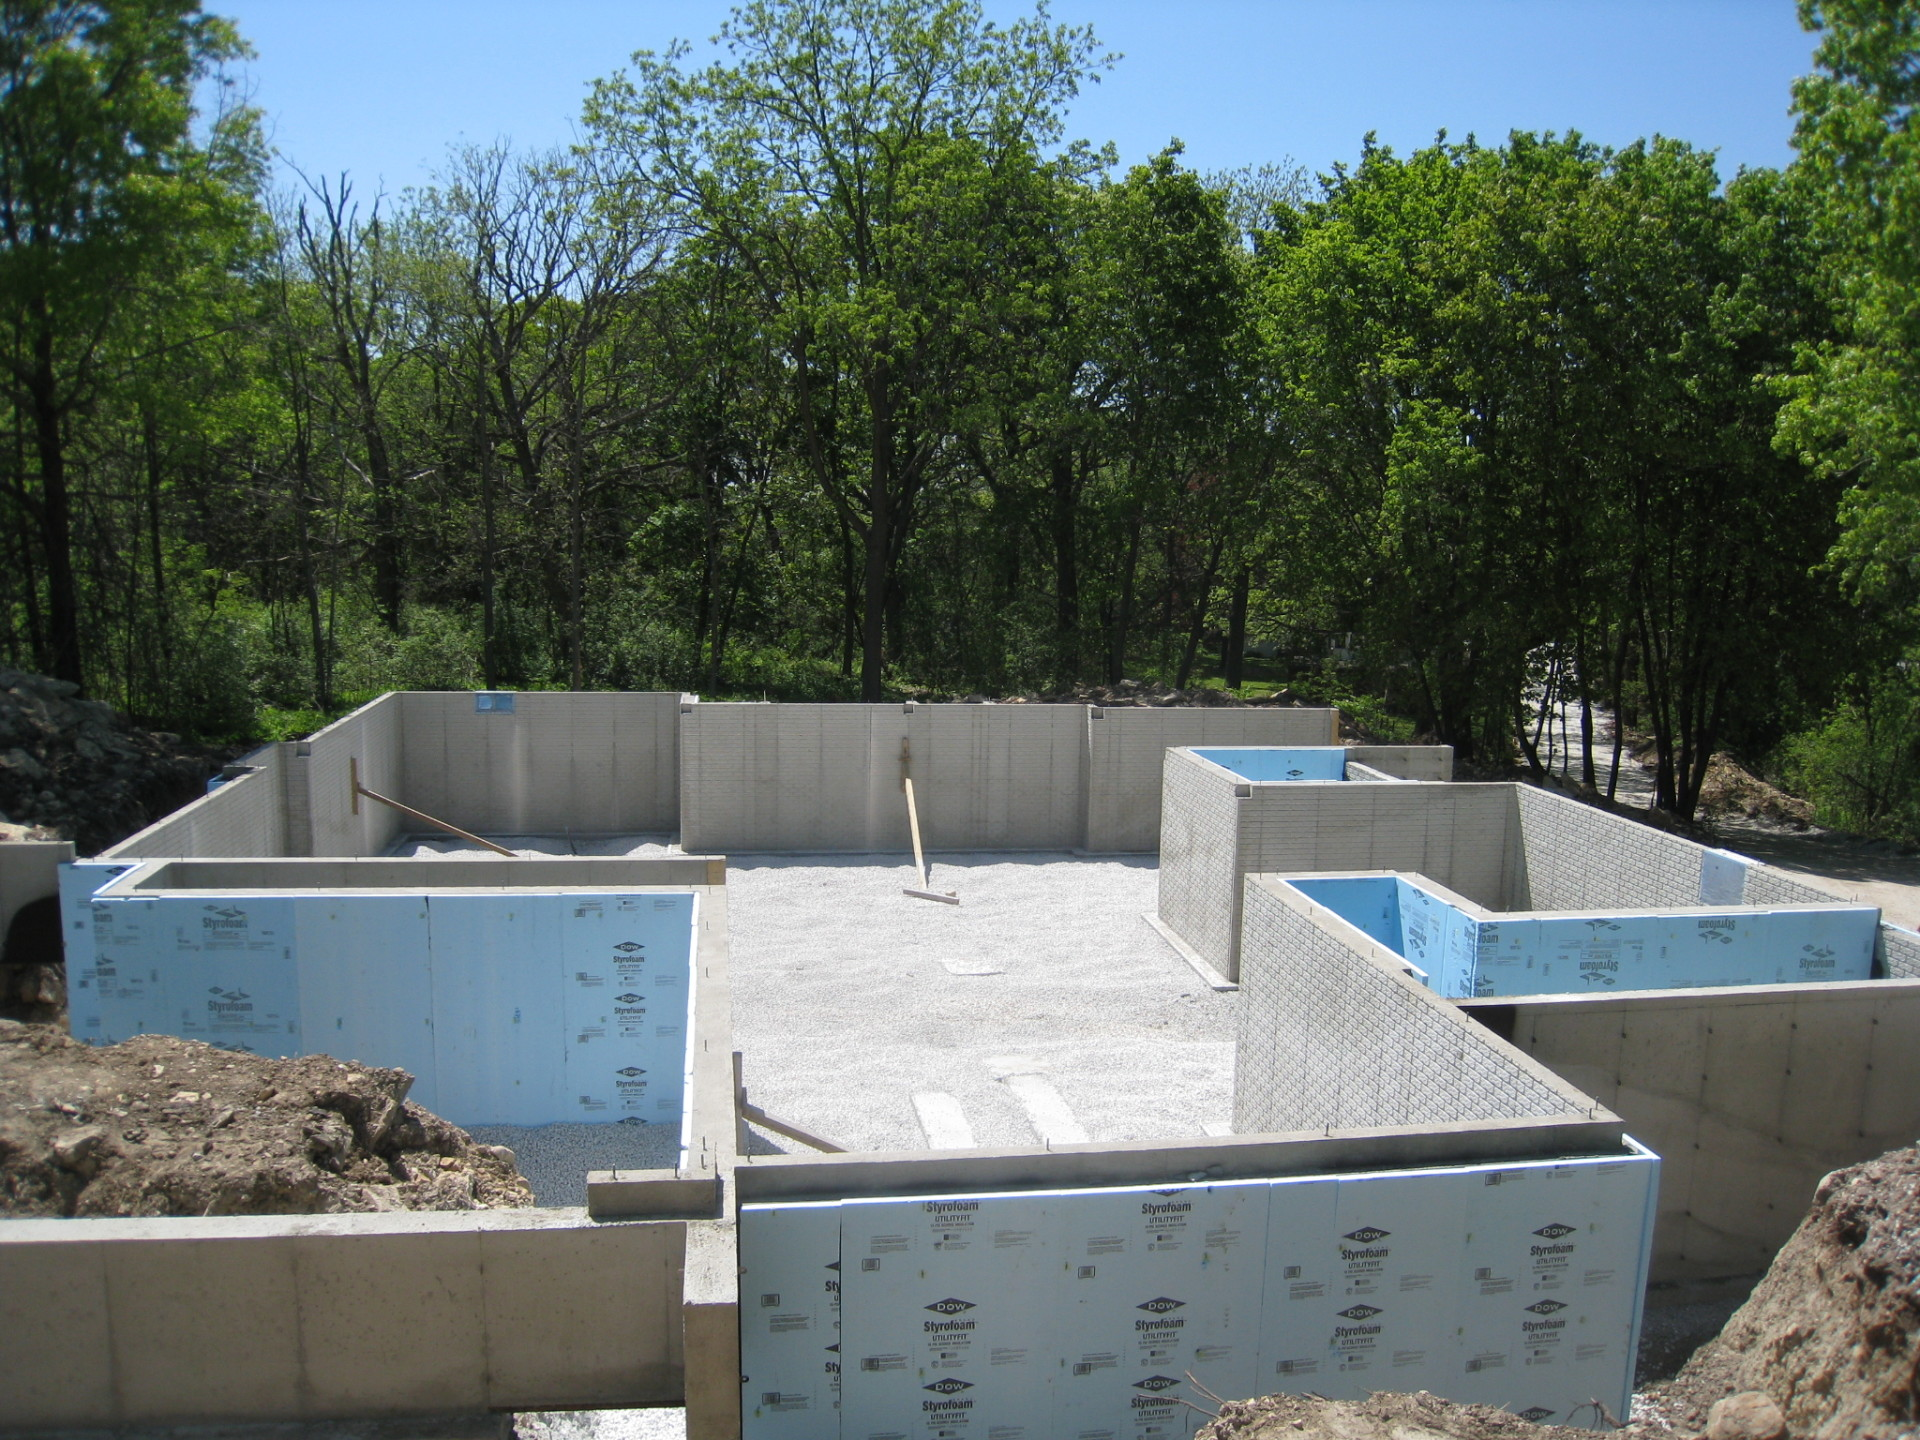 Services precise poured walls Foundation pouring